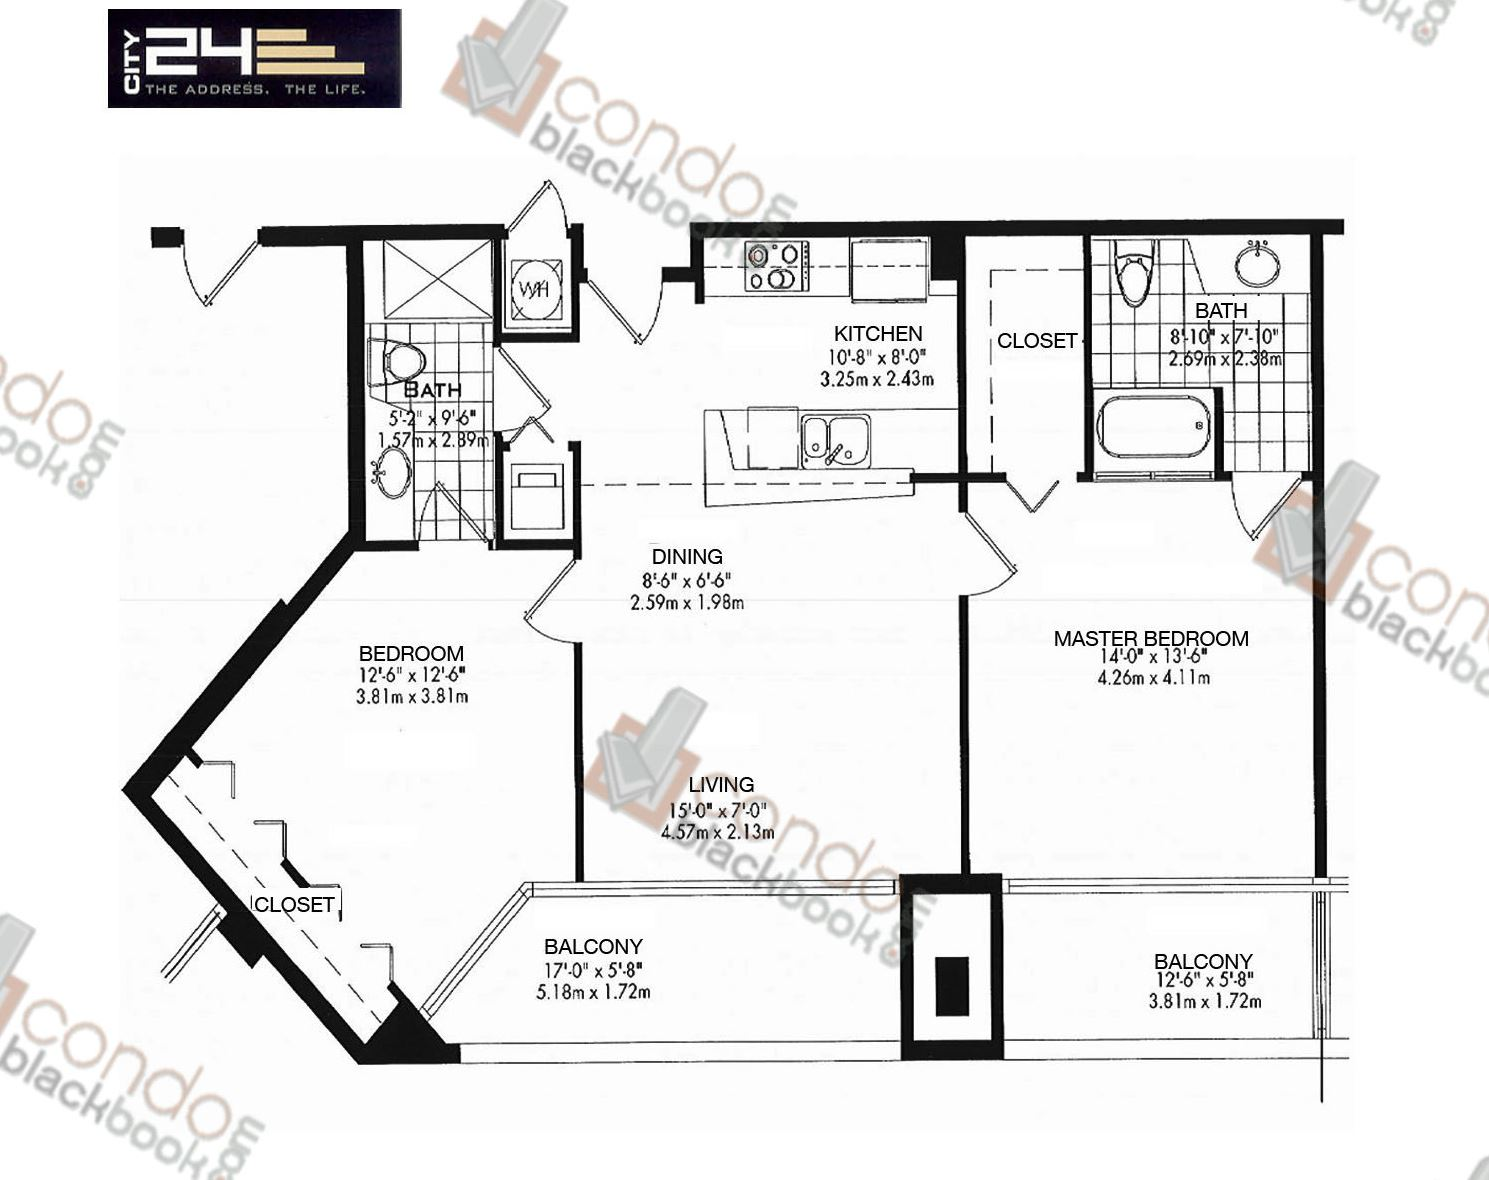 Floor plan for City 24 Edgewater Miami, model Unit B1, line 02,03, 2/2 bedrooms, 994 sq ft